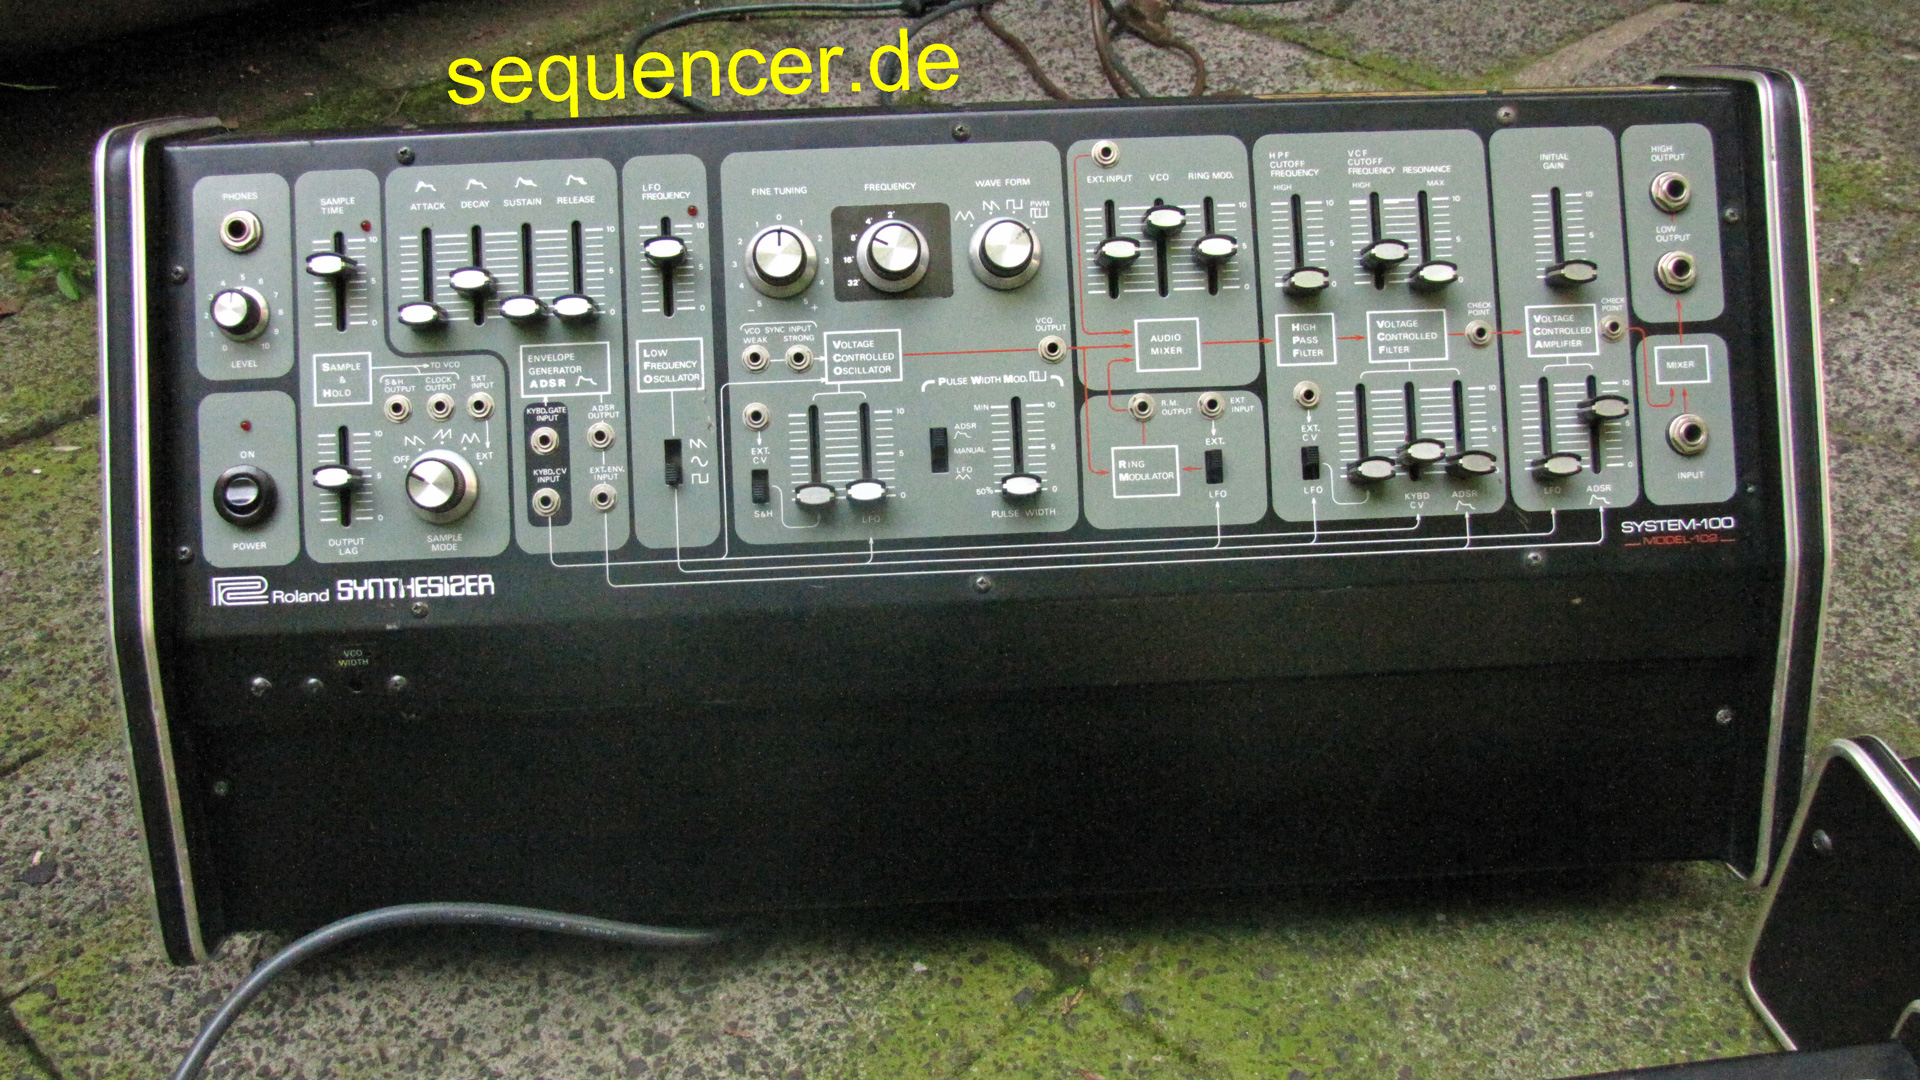 System 100 - Expander 102 System 100 - Expander 102 synthesizer